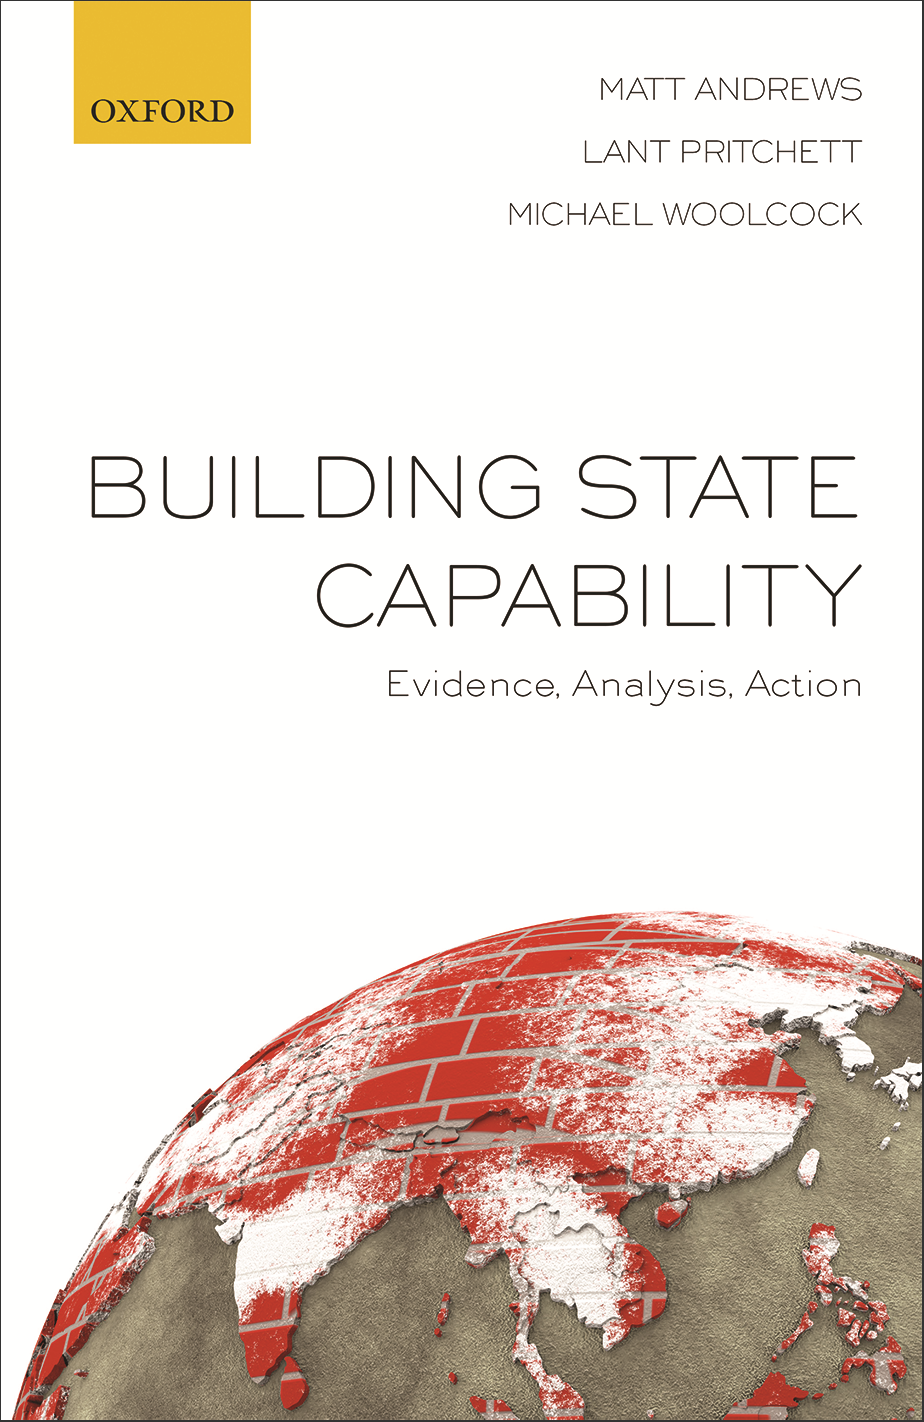 Building State Capability: Evidence, Analysis, Action